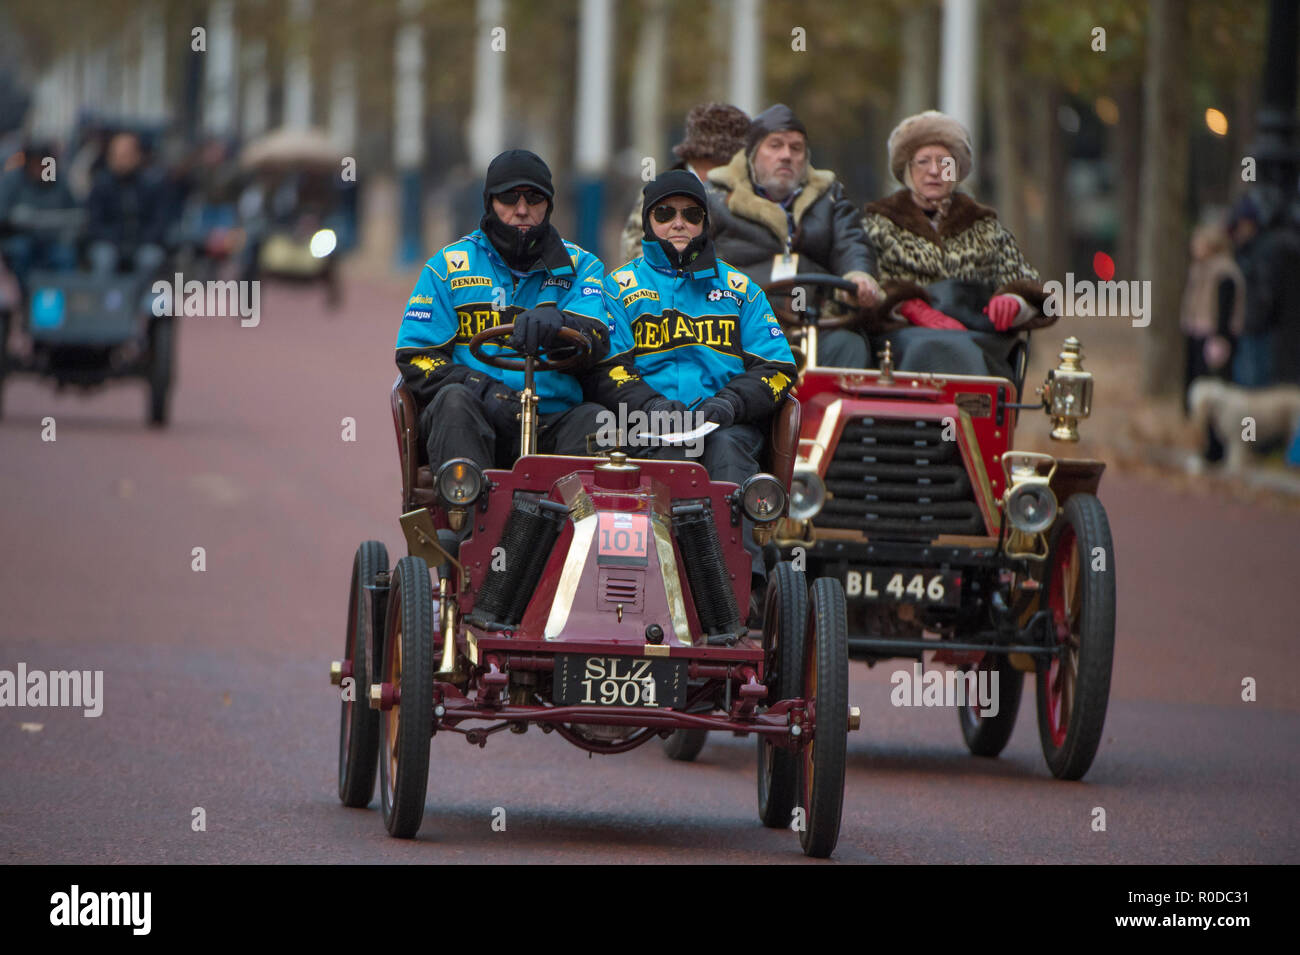 The Mall, London, UK. 4 November, 2018. Bonhams London to Brighton Veteran Car Run 2018, vehicles trundle down The Mall after the sunrise start in Hyde Park at 06.59am. The longest running motoring event in the world, with 400 veteran vehicles starting the 60 mile journey to the south coast, and the first car due to arrive at 09.59am. Credit: Malcolm Park/Alamy Live News. Stock Photo